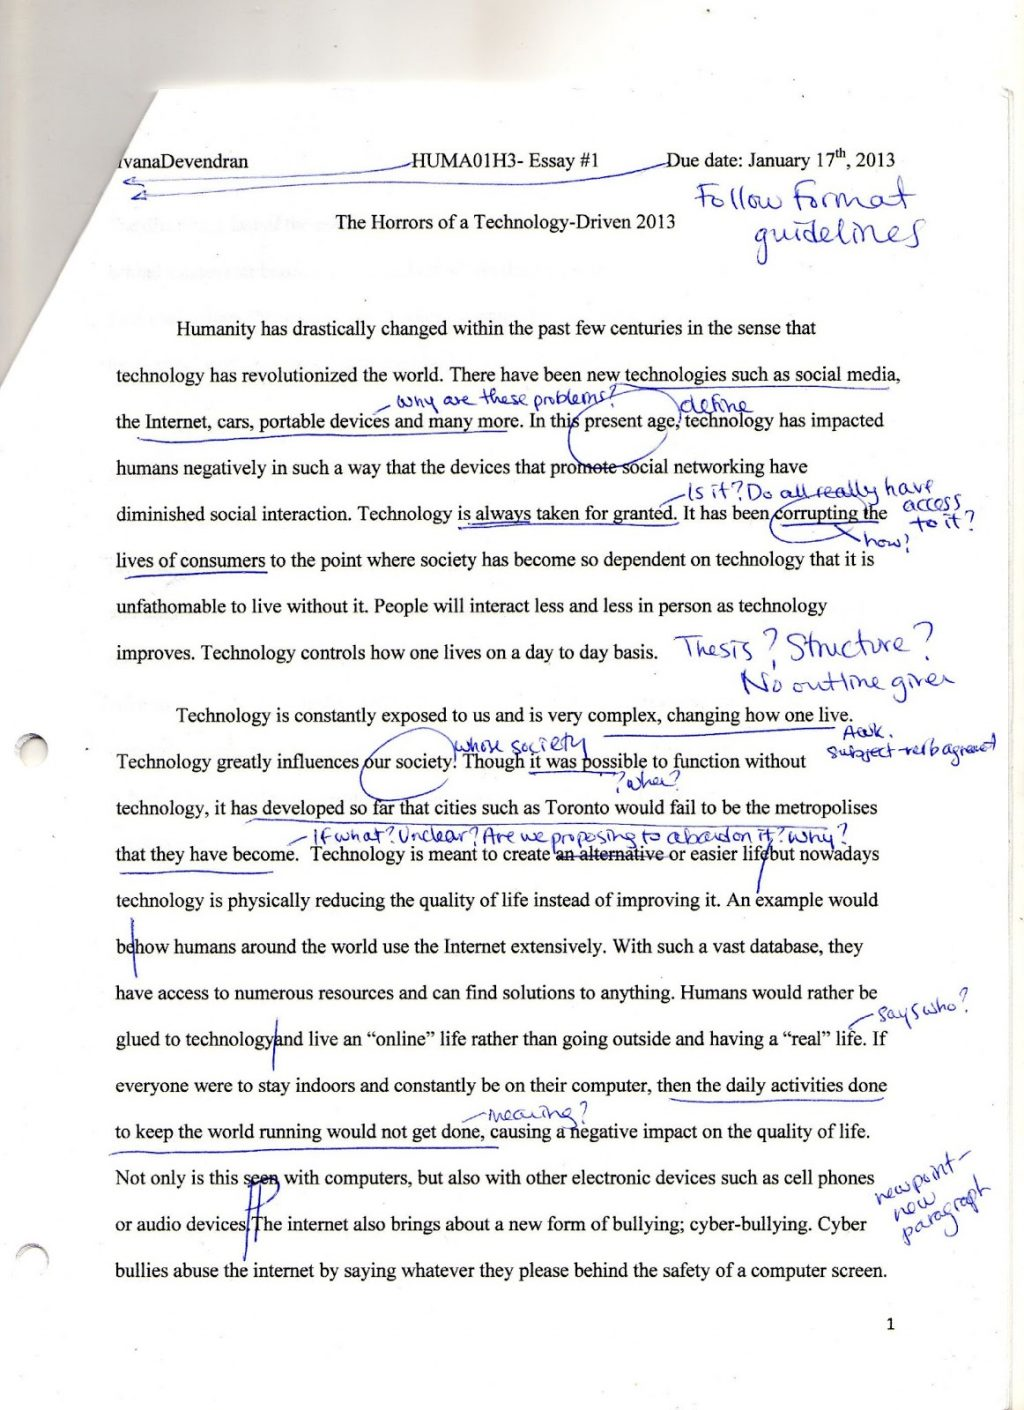 005 Music Research Paper Topics Argumentative Essay Img008 What Should You Avoid In Writing Humanities Appreciation Questions Classical History Persuasive20 Incredible Full